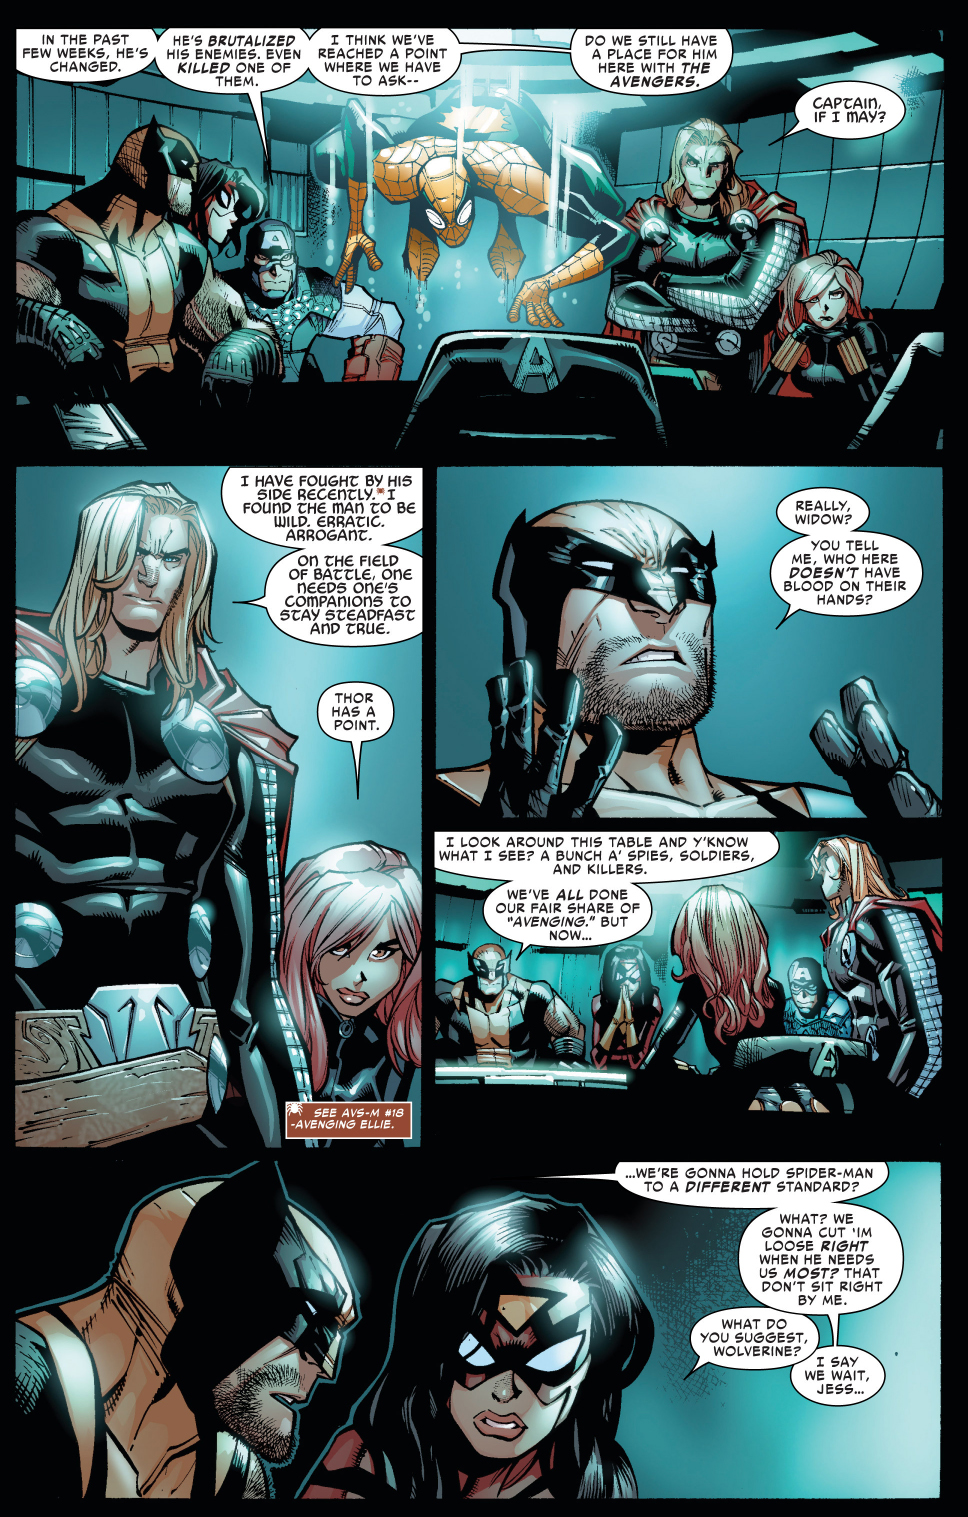 wolverine defends superior spider-man from the avengers